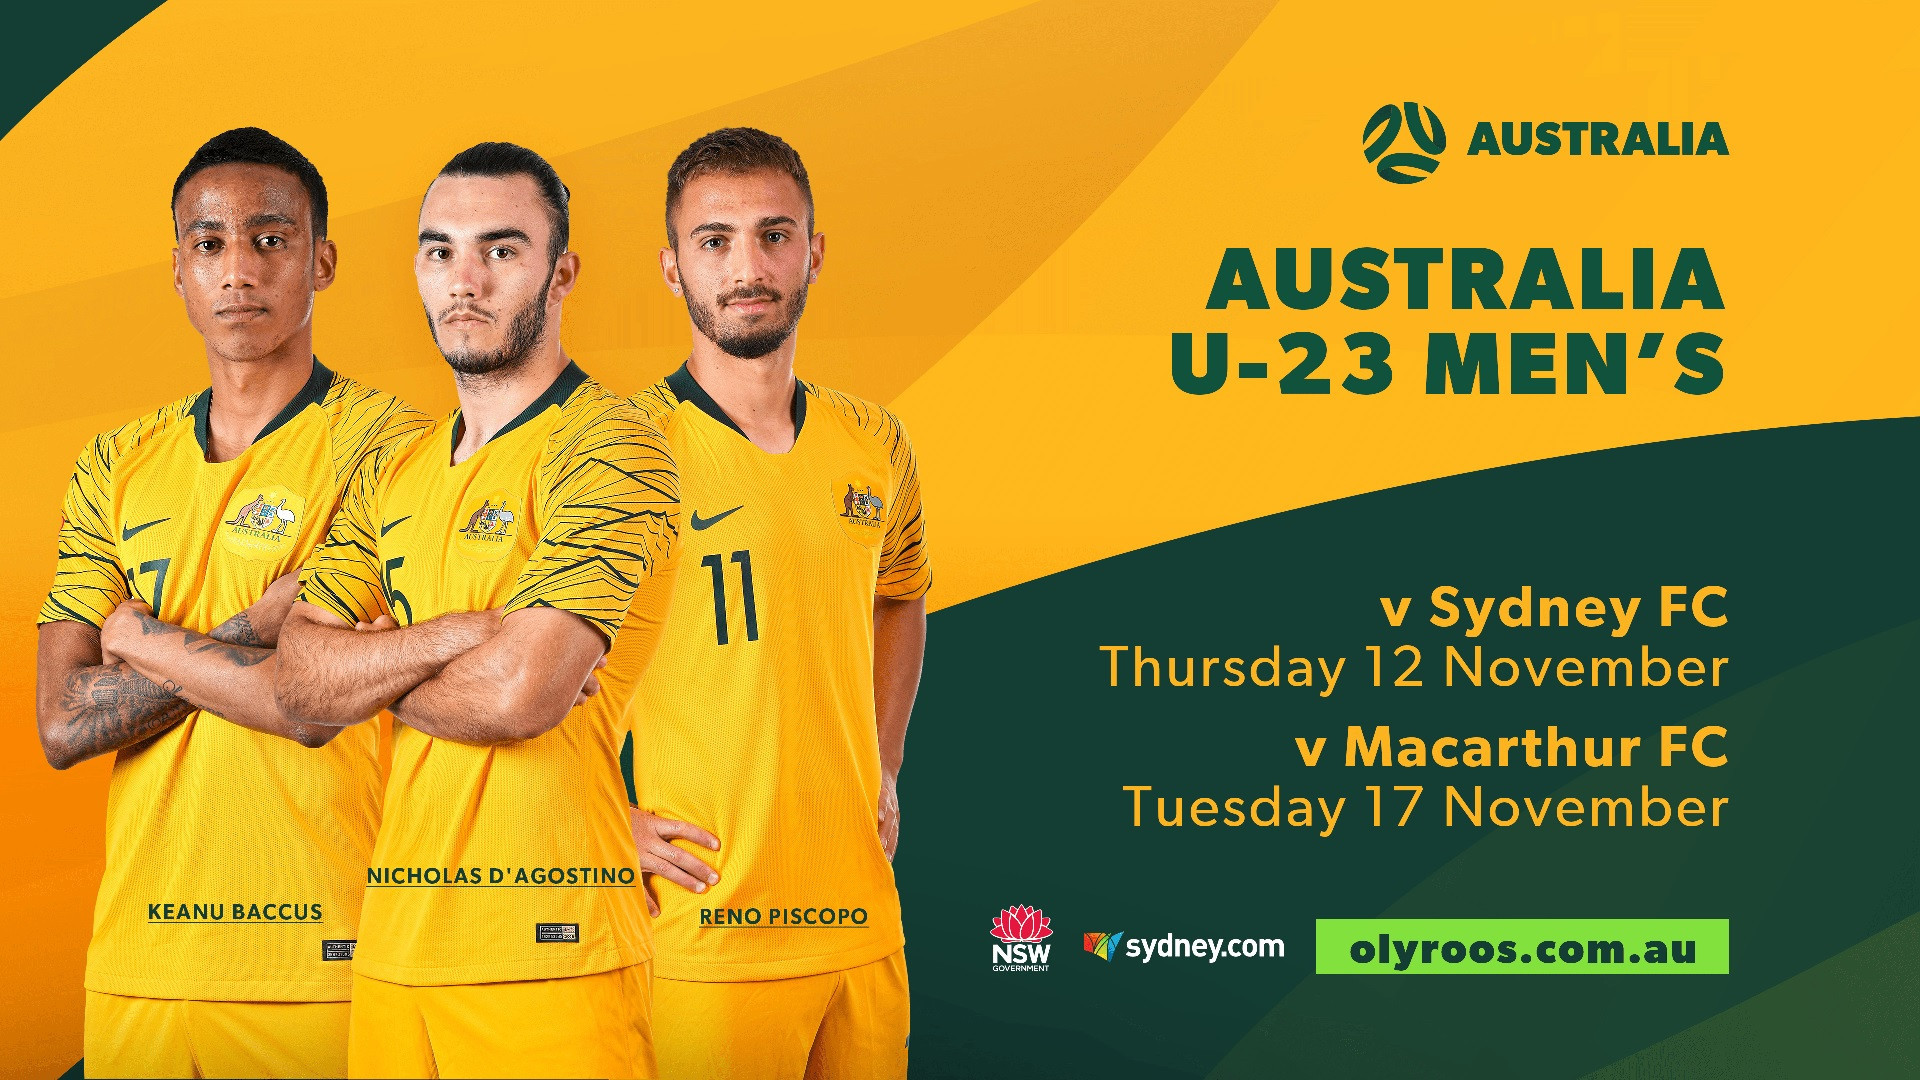 Olyroos players hope to impress at training camp to earn Tokyo 2020 place